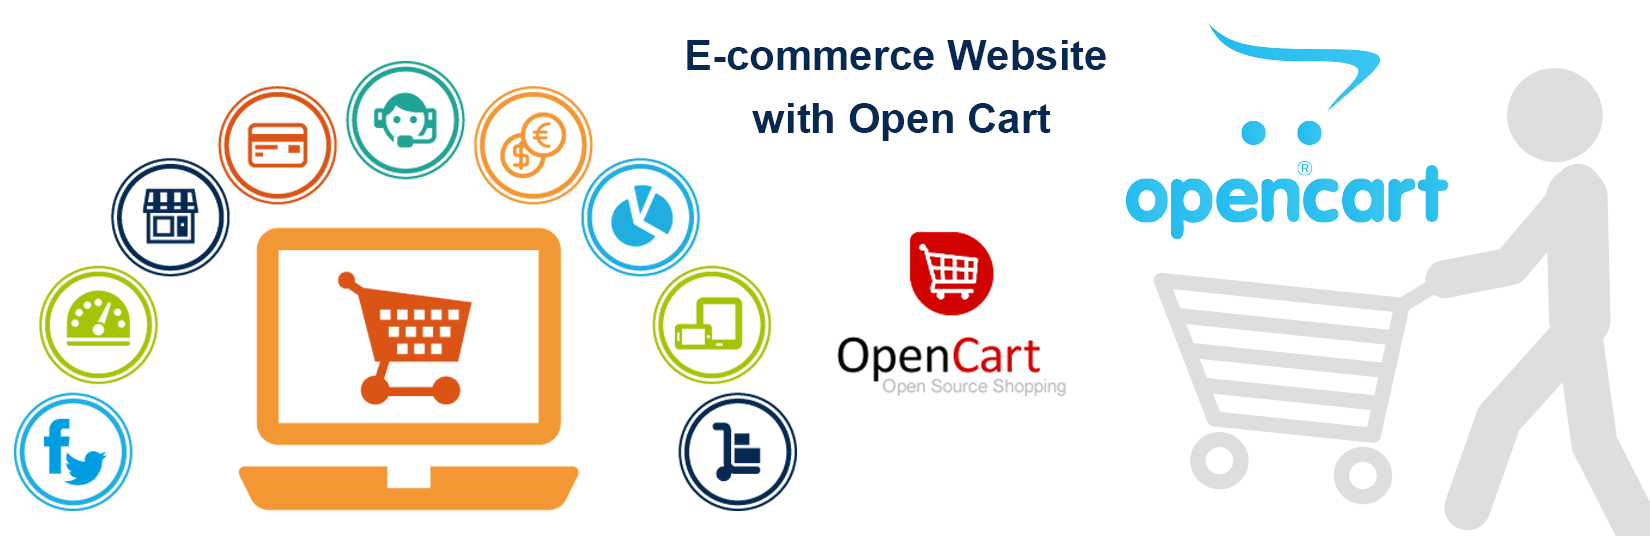 Optimization Tips For OpenCart Ecommerce Development Company - Image 1